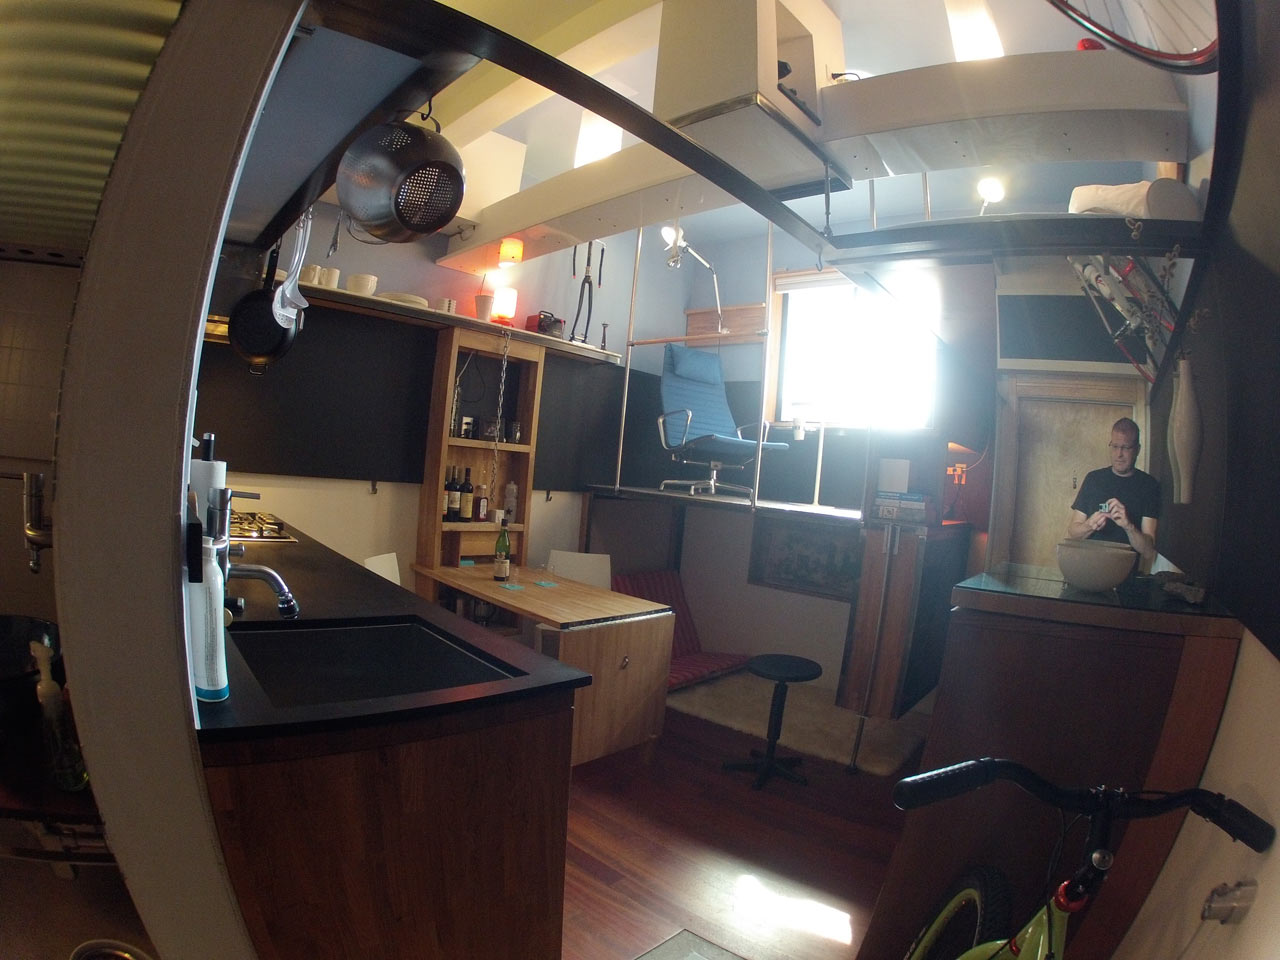 182 Square Foot Micro Apartment in Seattle